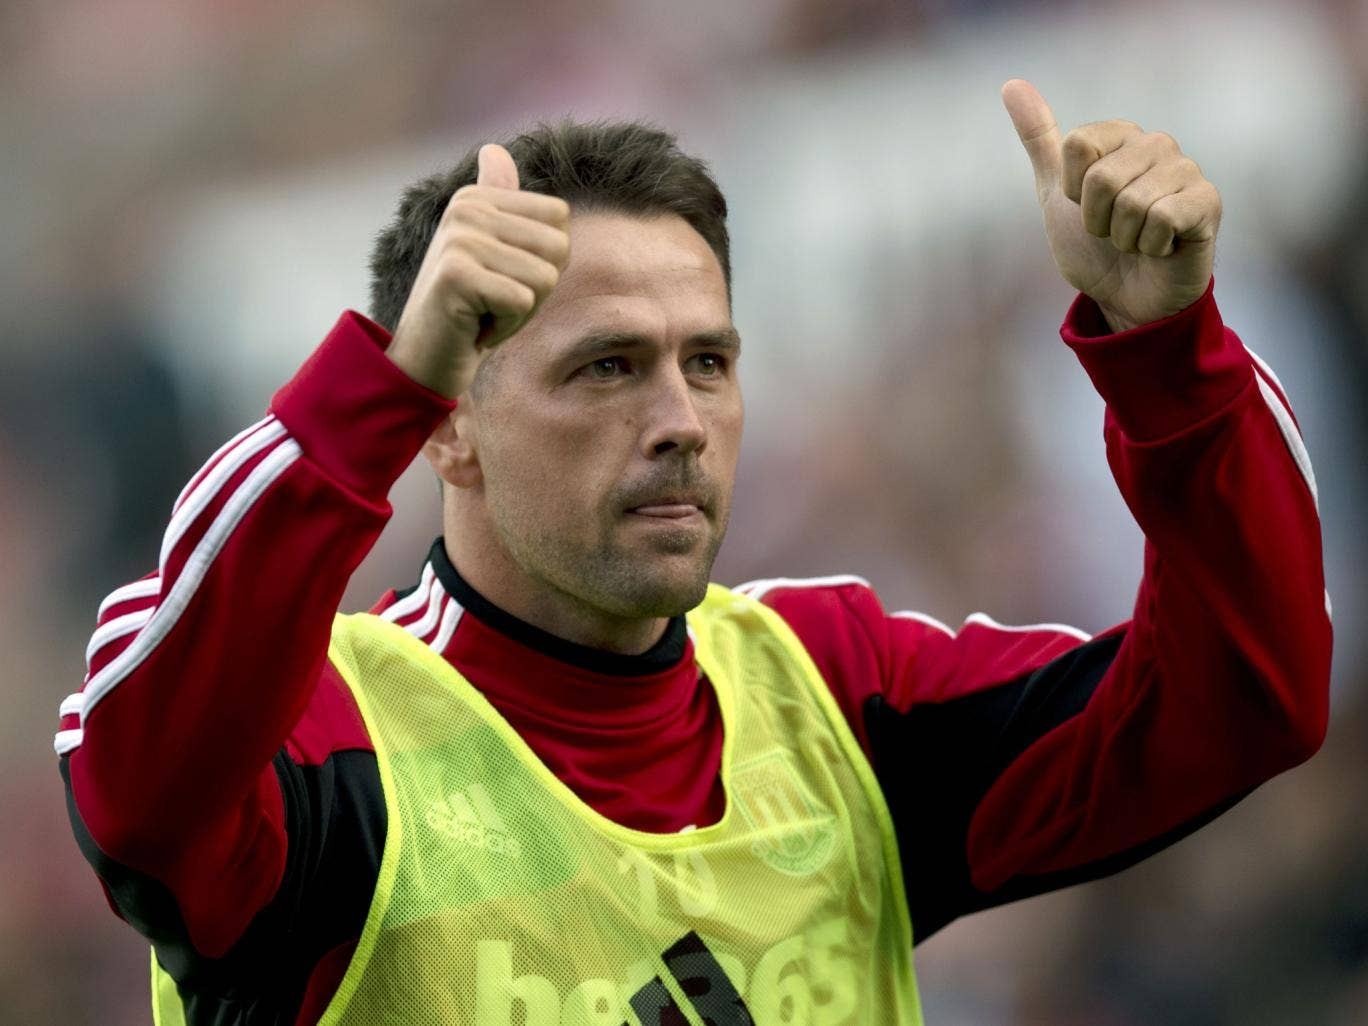 """<b>Michael Owen's</b> search for a new club gets a bit desperate:<br/> """"Having a 5 a side tonight with my mates. If any scouts fancy popping down to assess my form they are welcome!!!"""""""